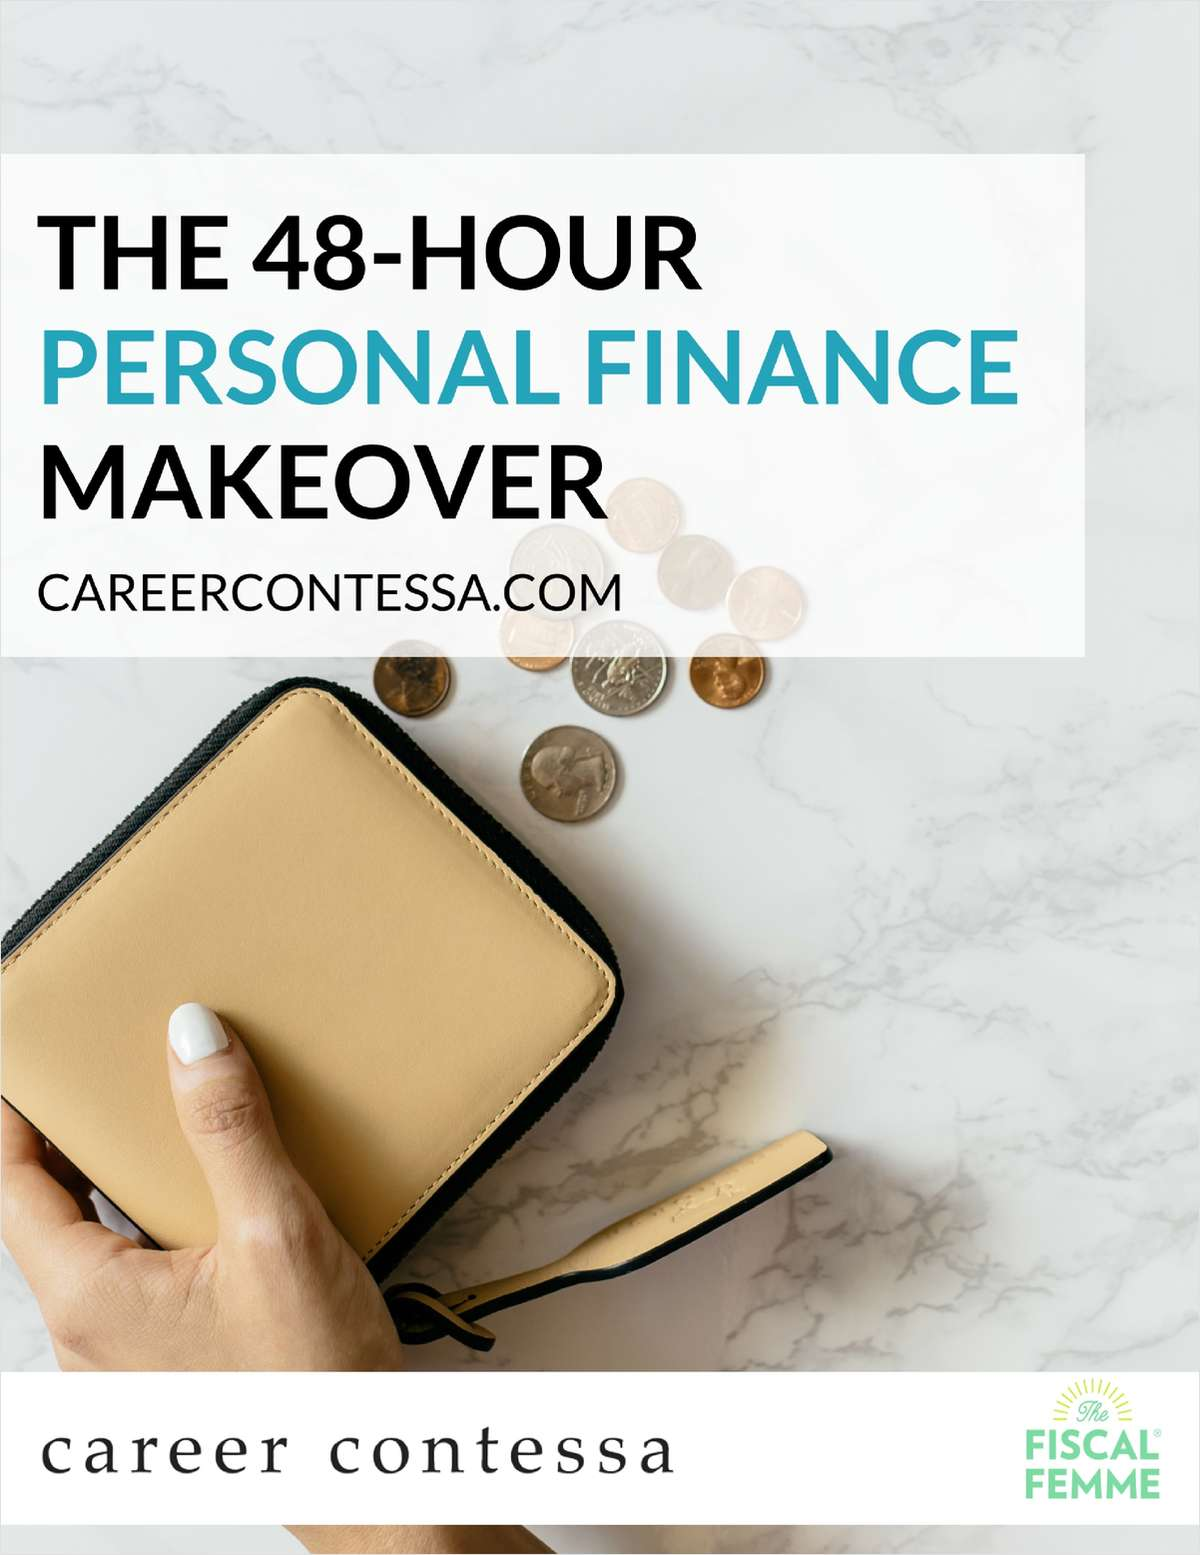 The 48-Hour Personal Finance Makeover Guide